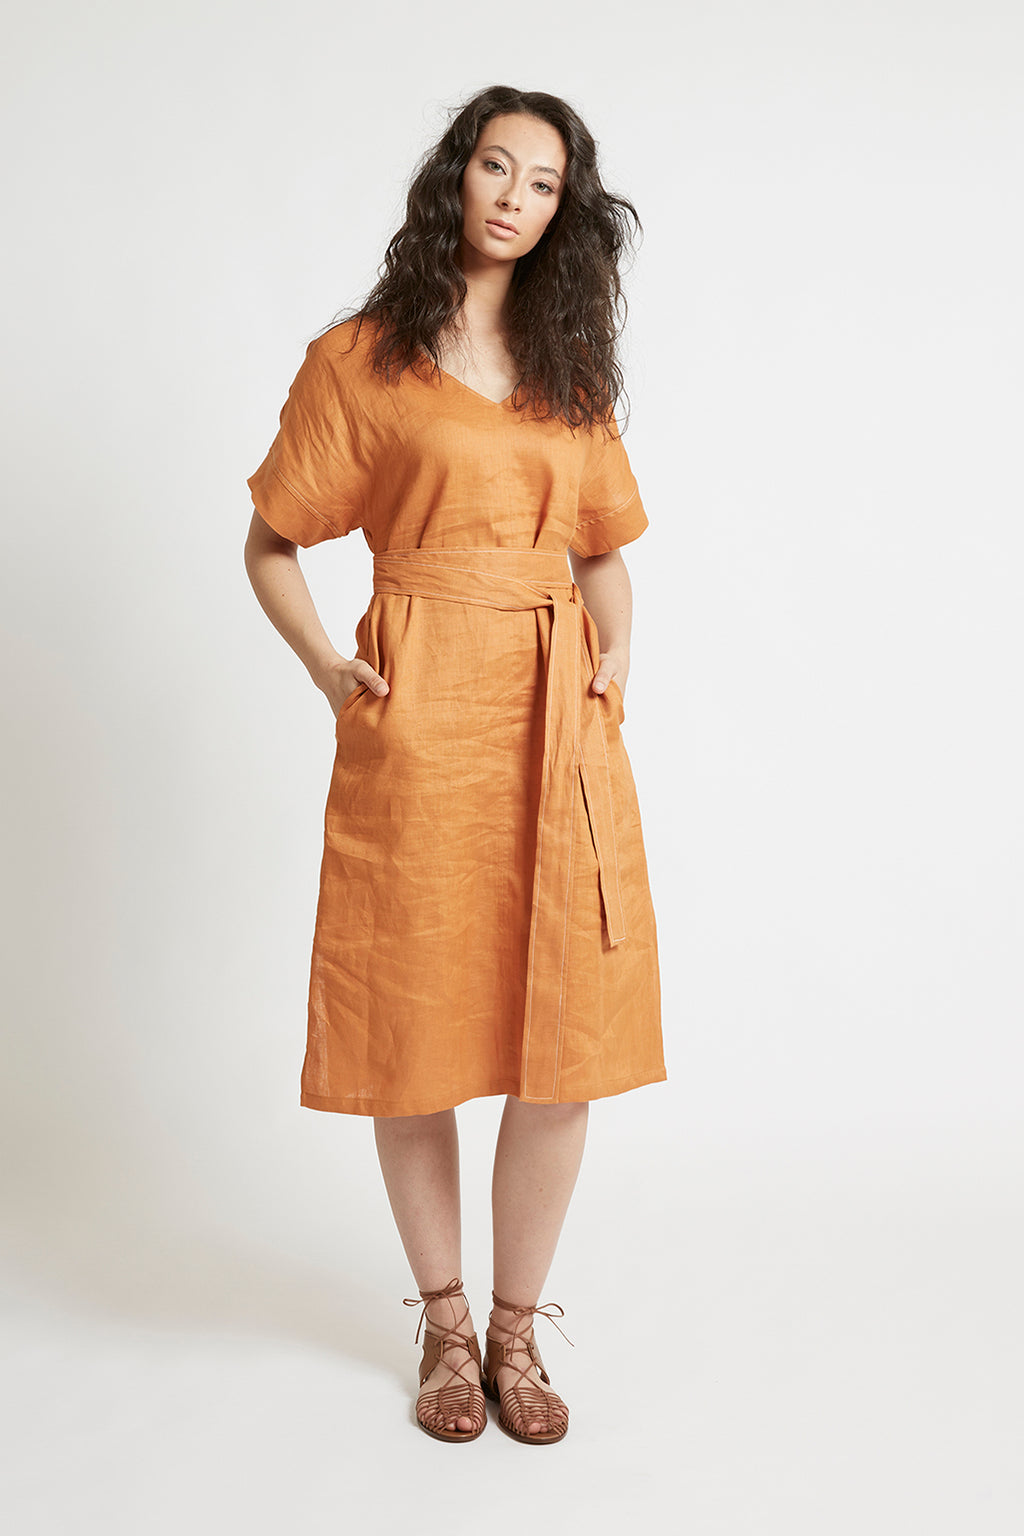 Orange Linen Kimono Sleeve Dress Dresses Ethical Sustainable Vegan Organic Australian fashion womens clothes